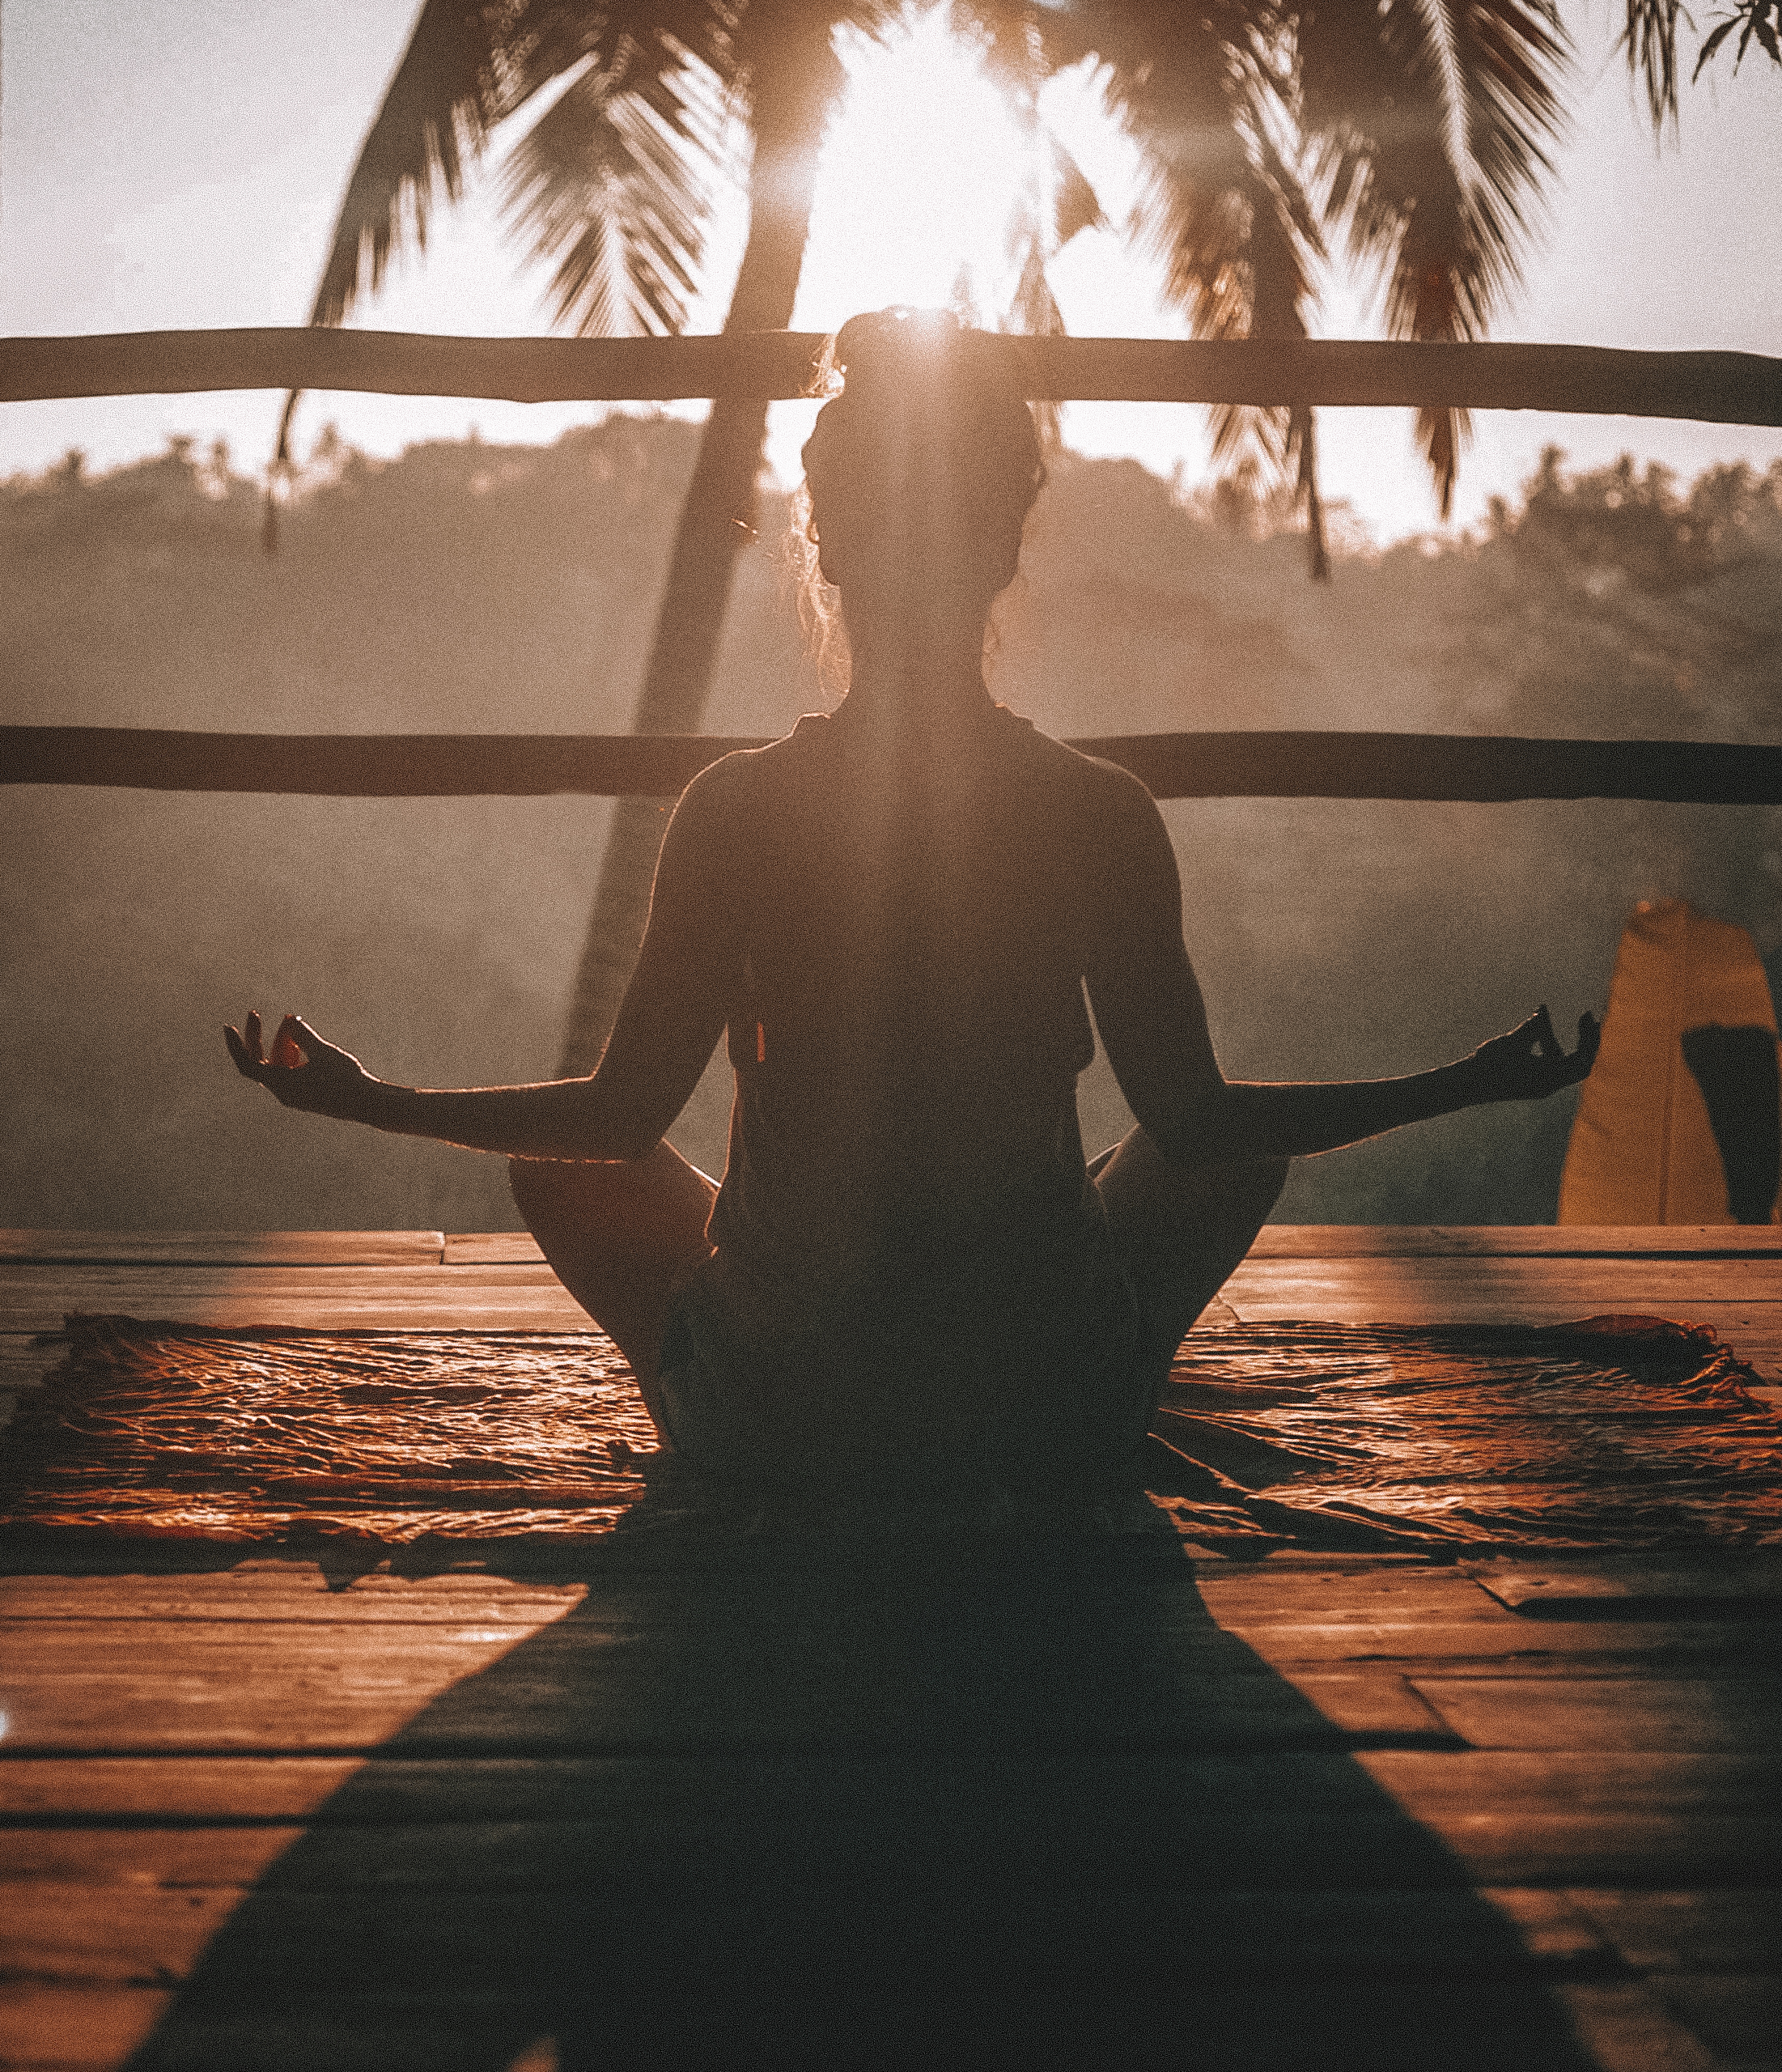 How does one meditate correctly?